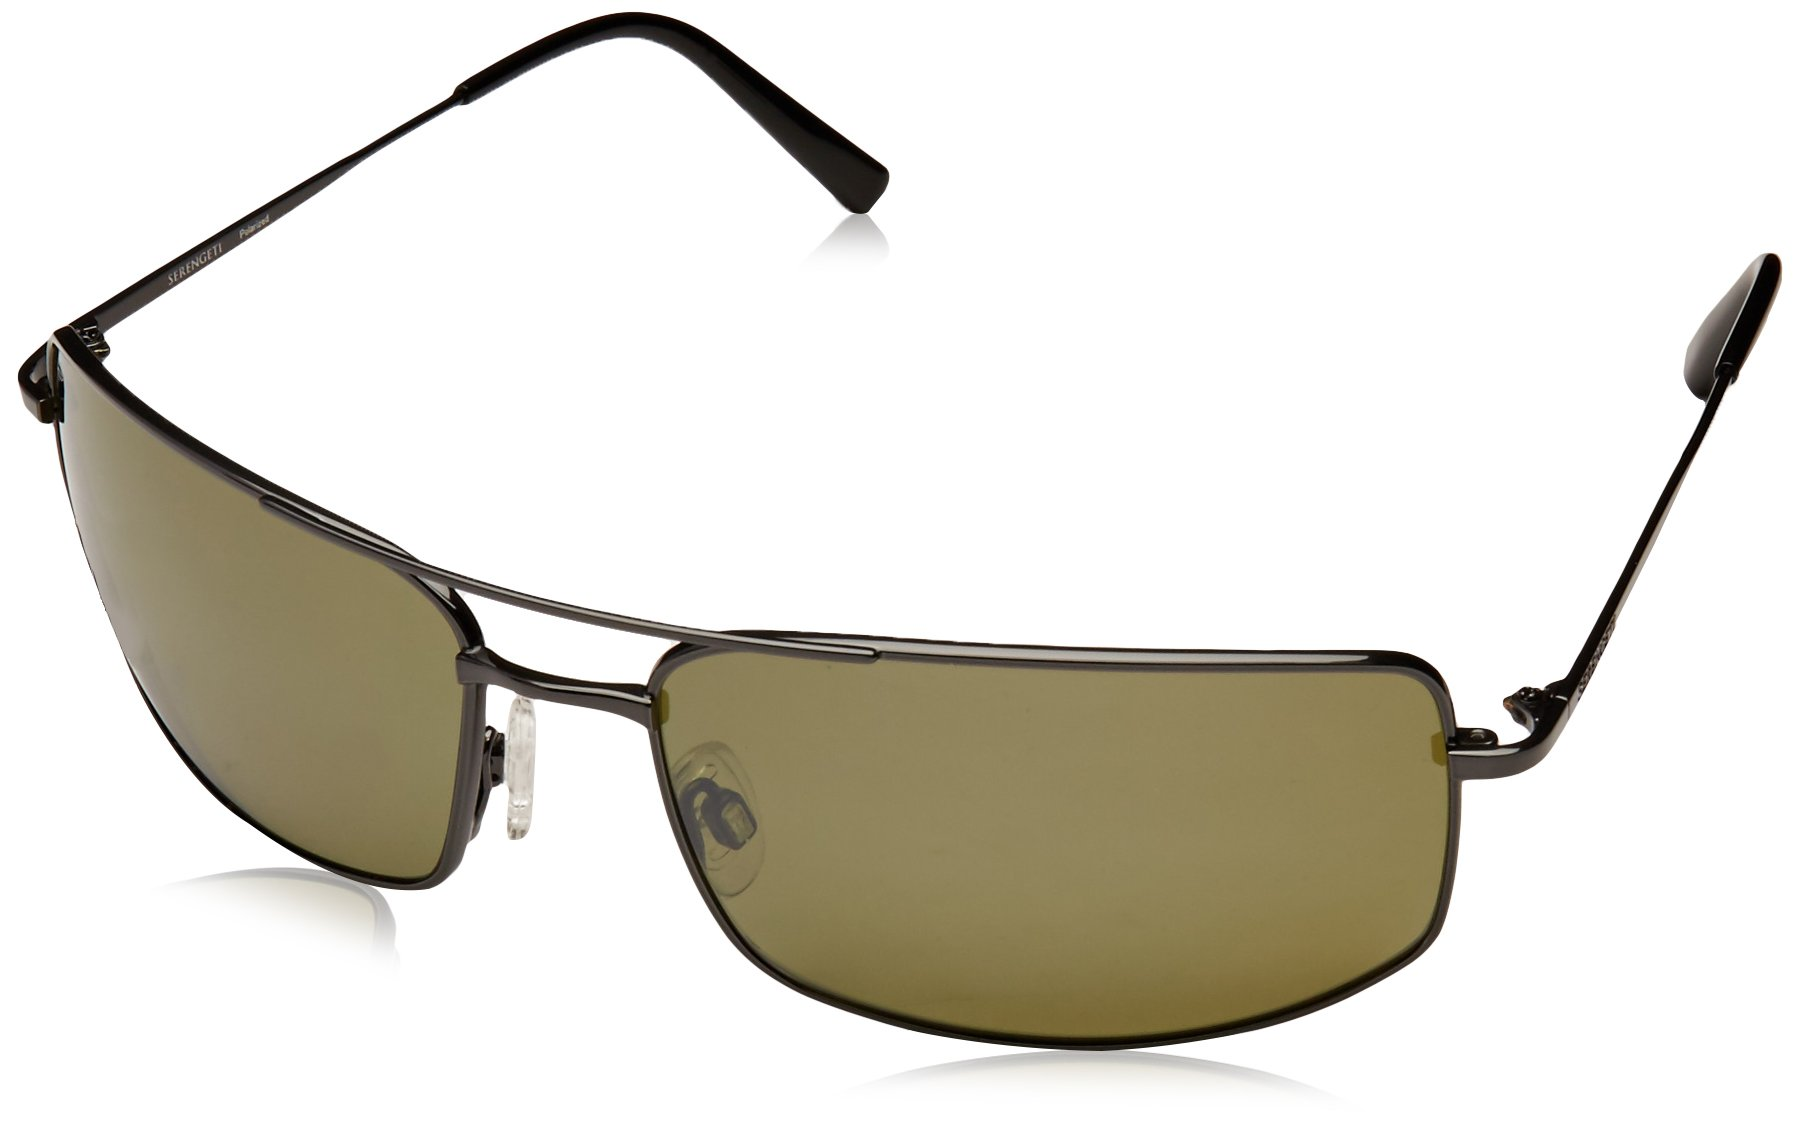 Serengeti 8303 Treviso Sunglasses, Shiny Dark Gunmetal Frame, Polarized 555nm Lens